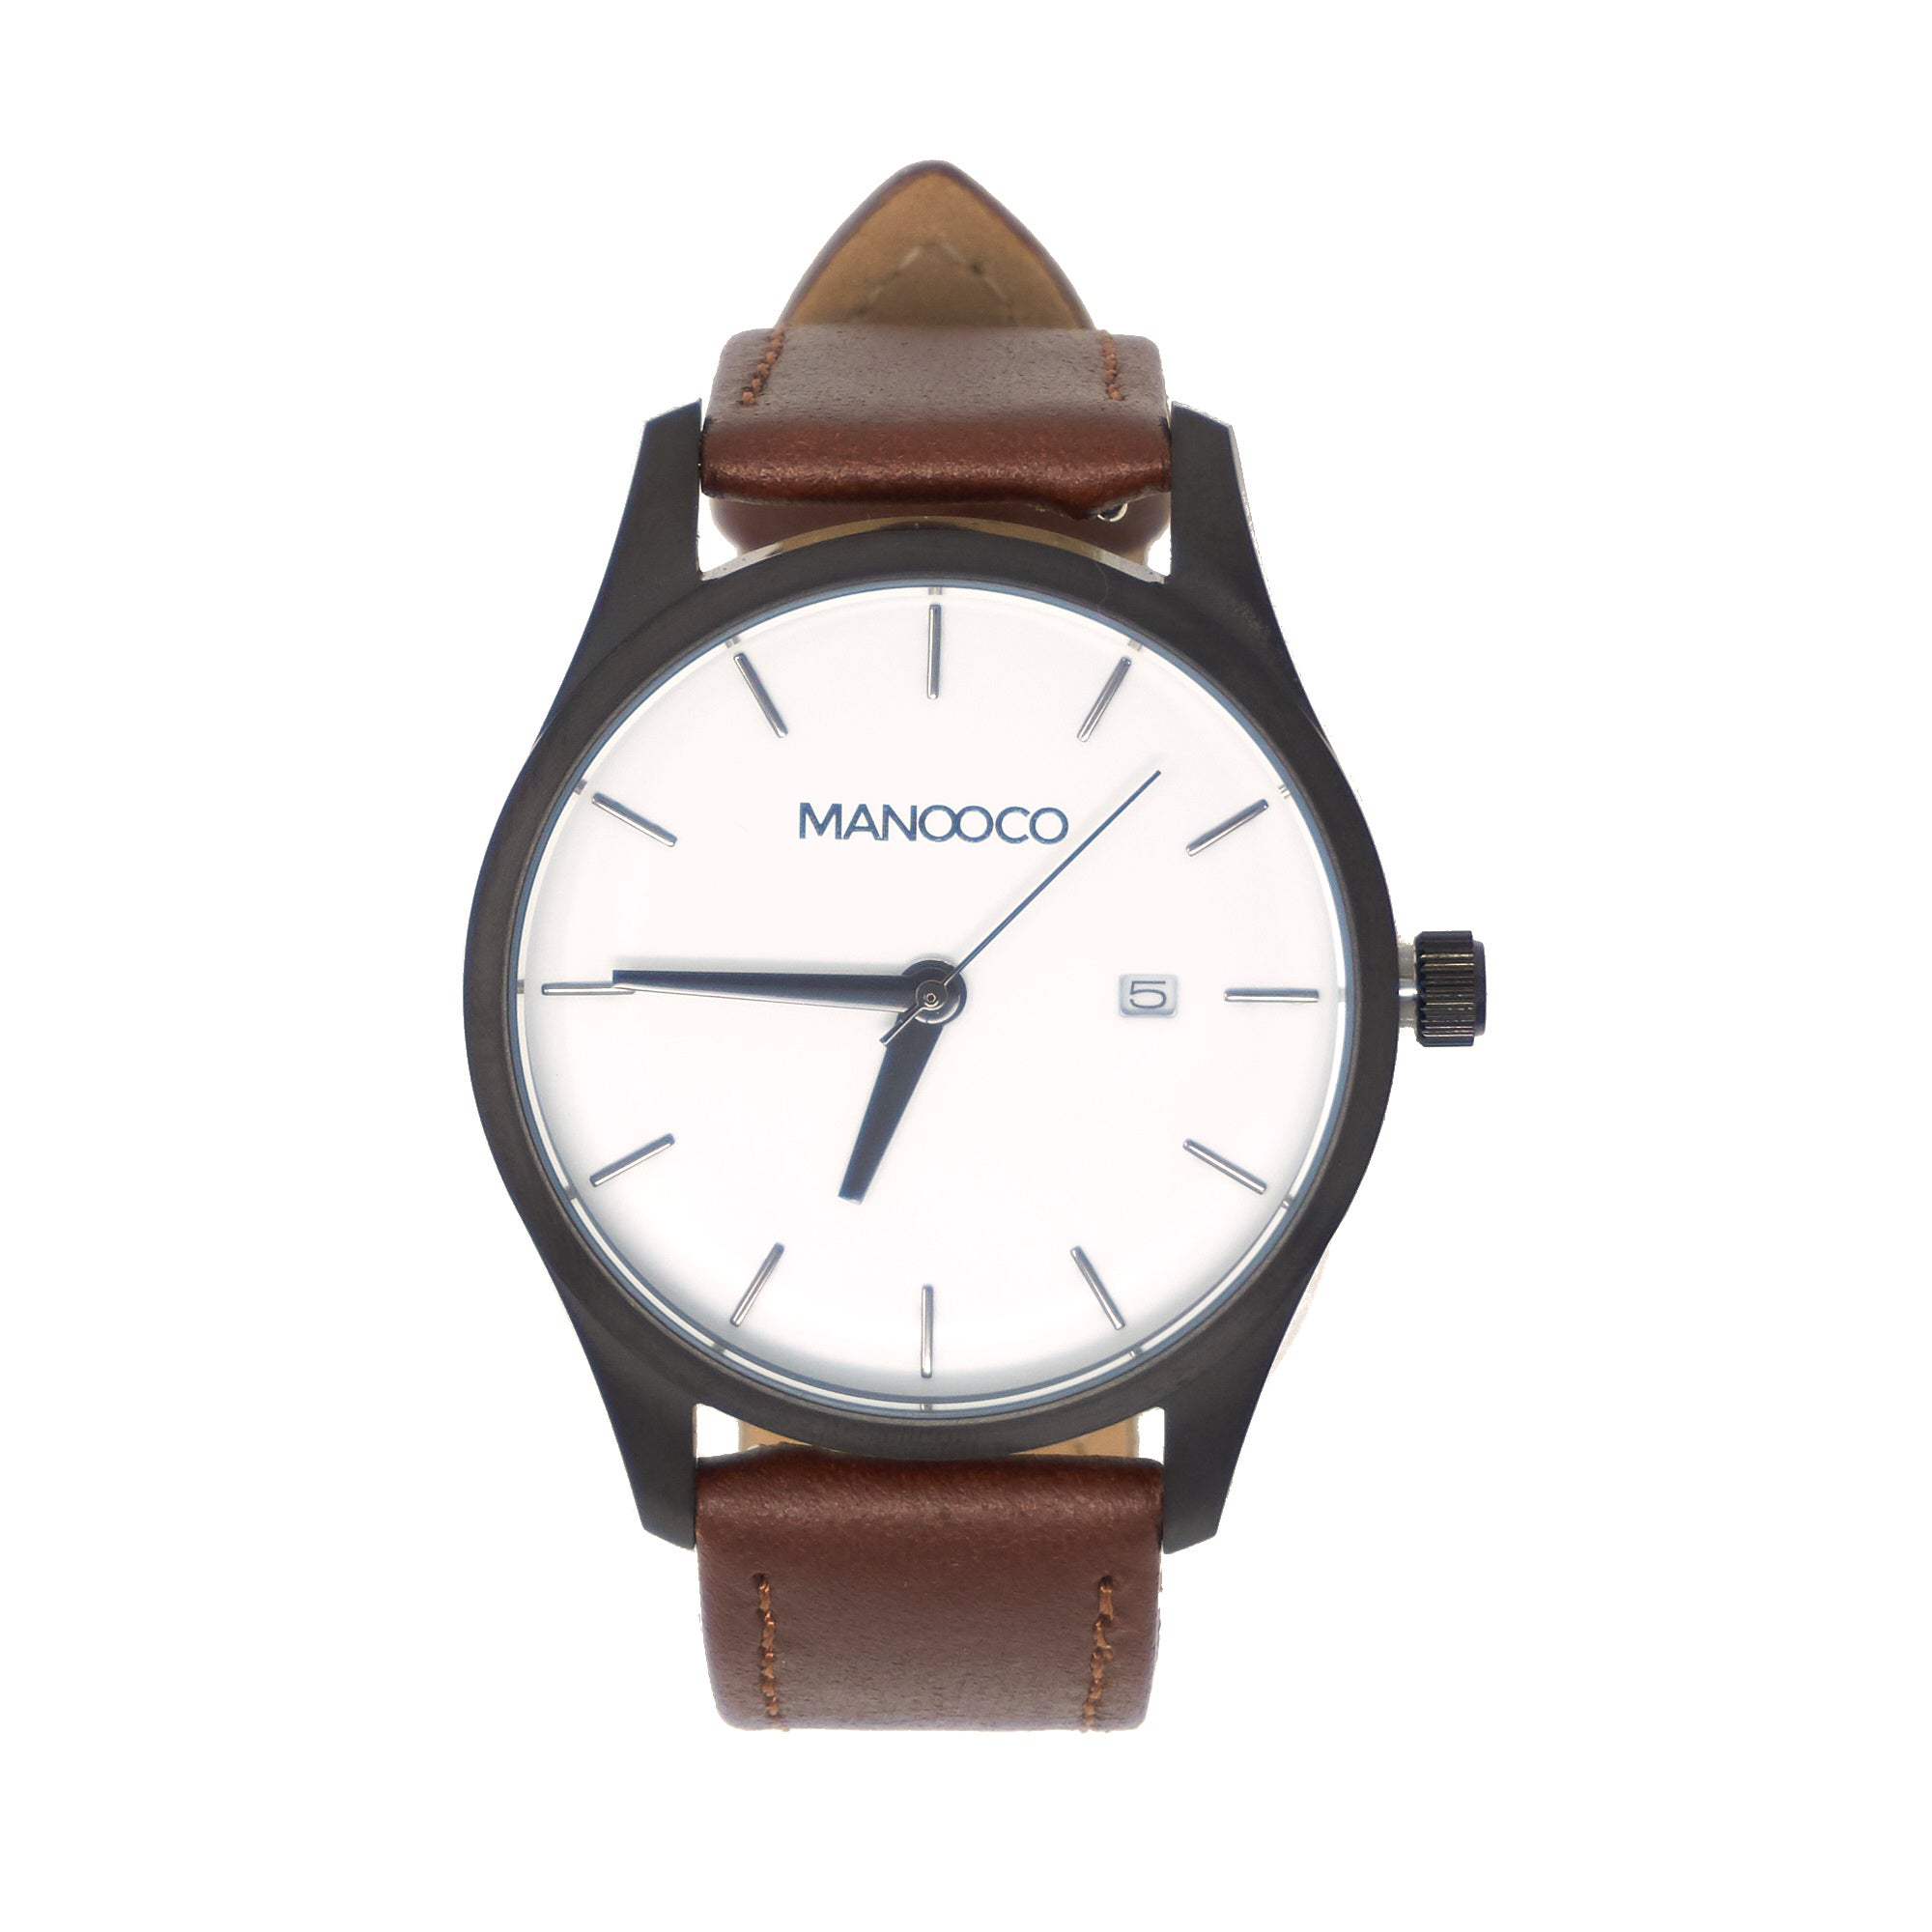 products com watch watches leather men black cased square cdn breda front navy files s shopify visser